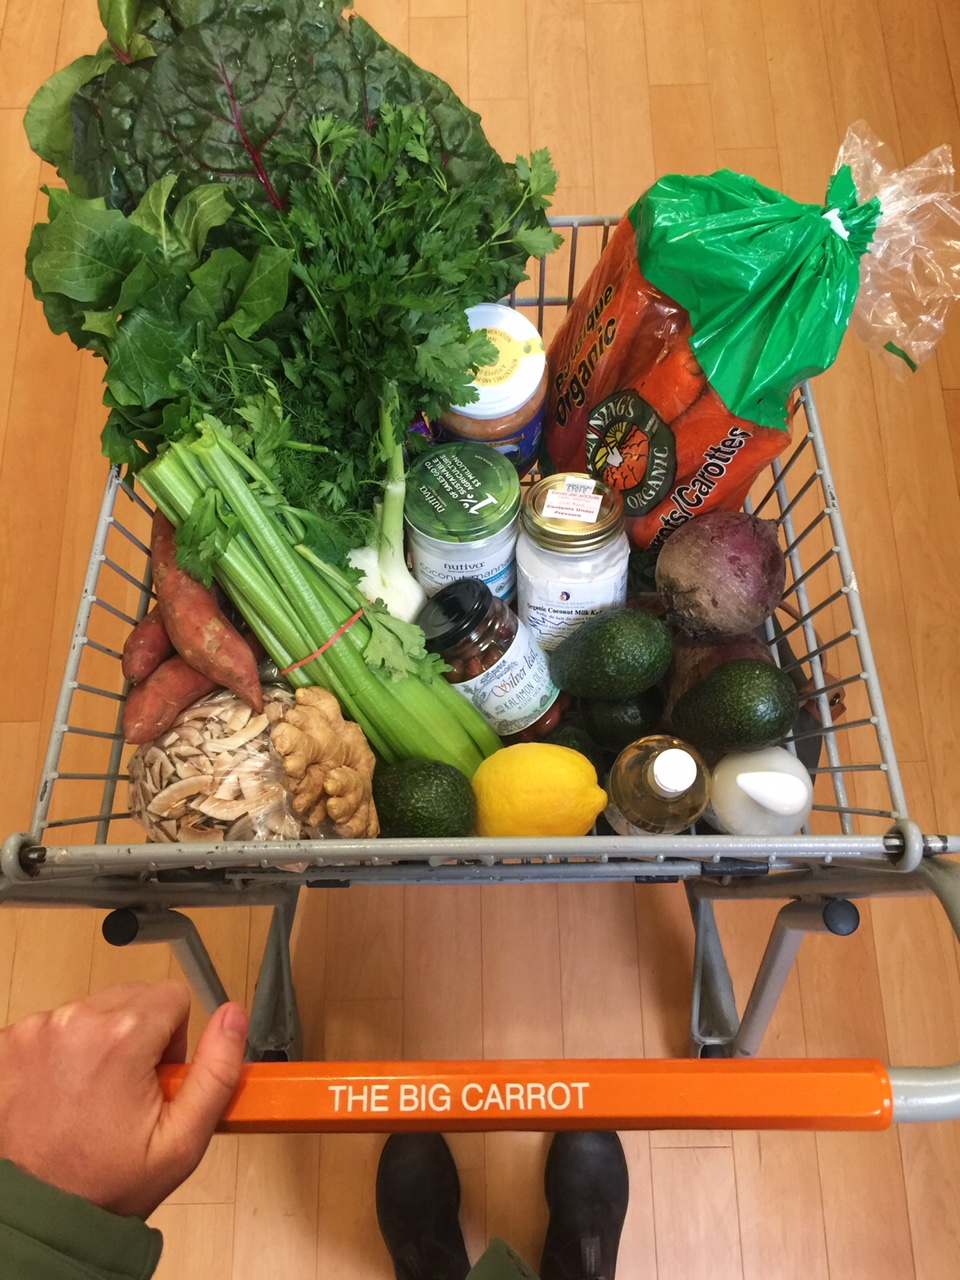 Grocery cart full of organic vegetables and fermented goods to nourish my body post-fast